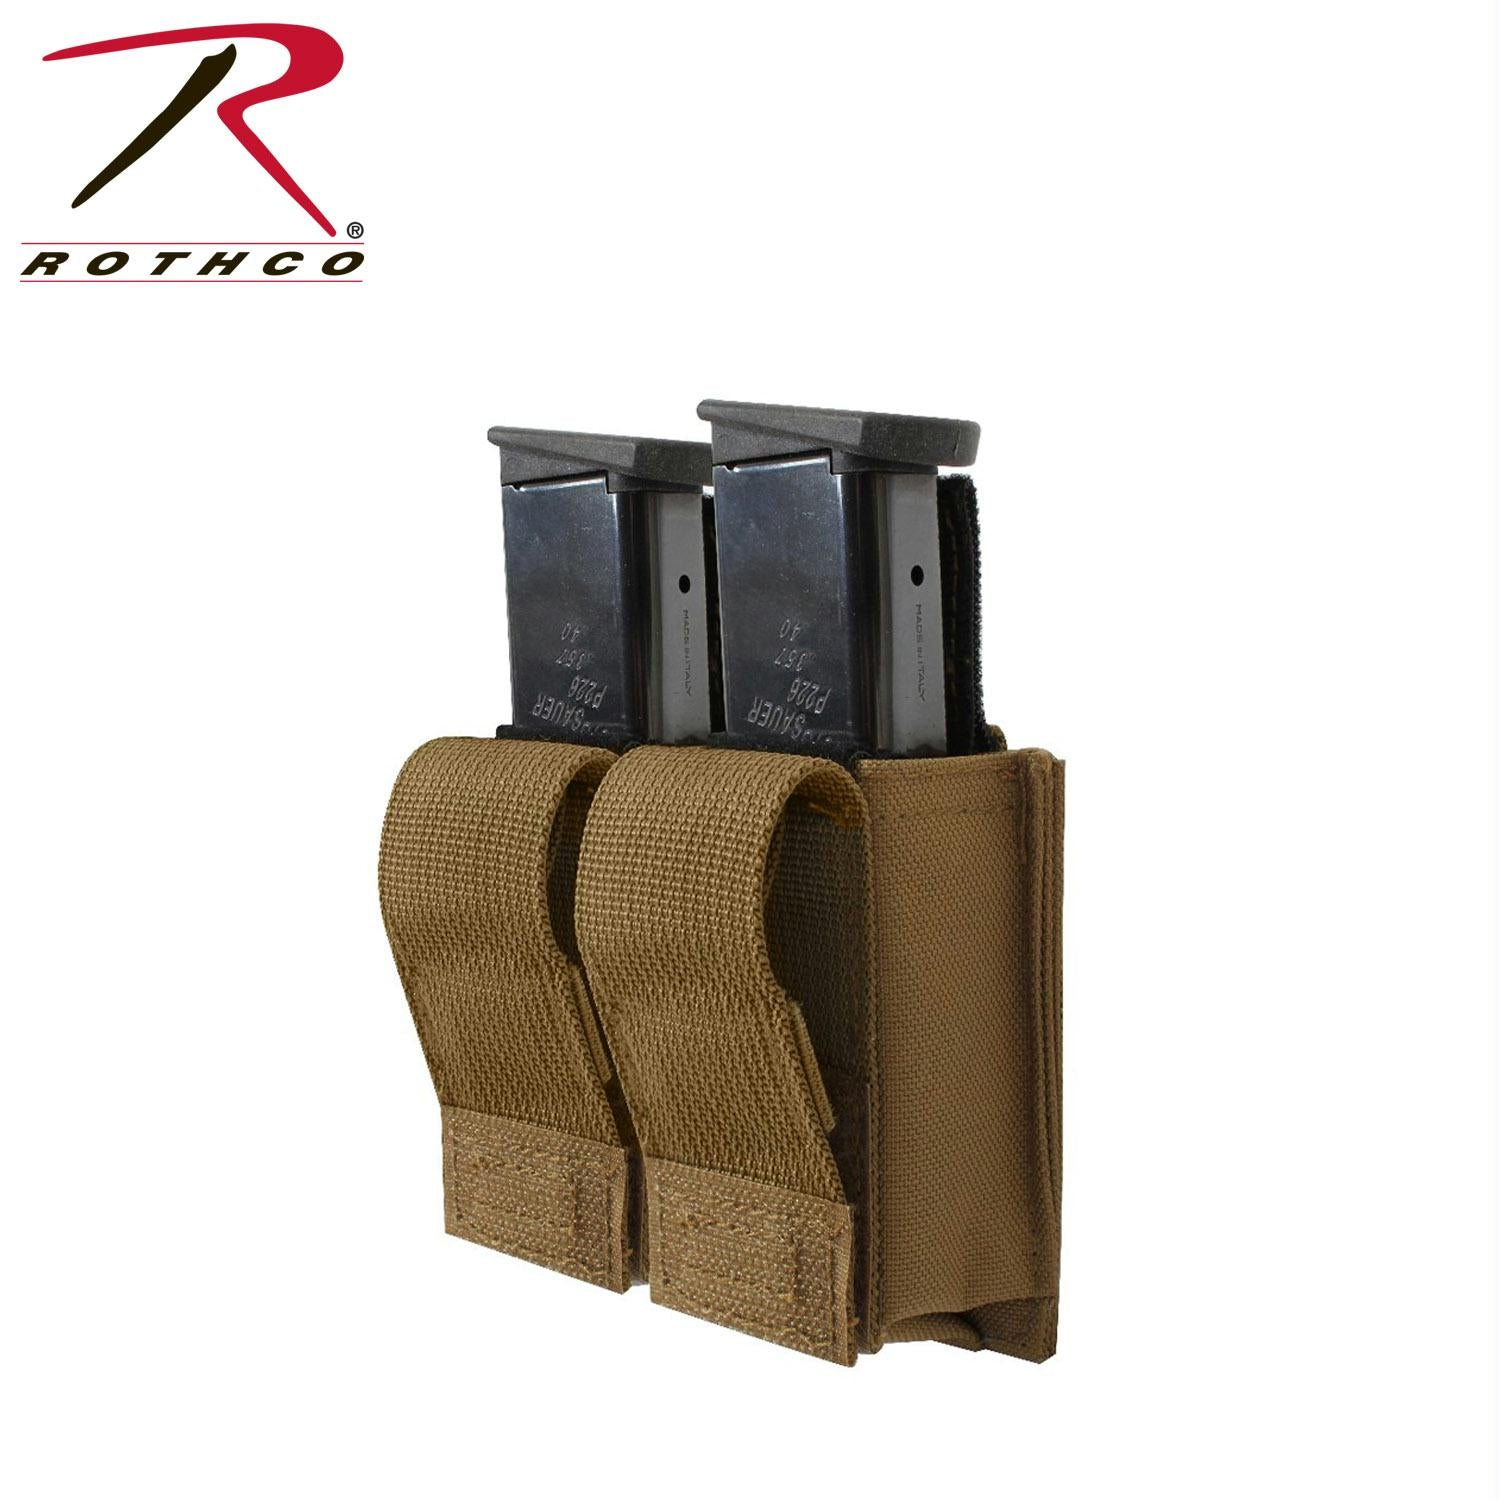 Rothco Molle Double Pistol Mag Pouch With Insert - Coyote Brown